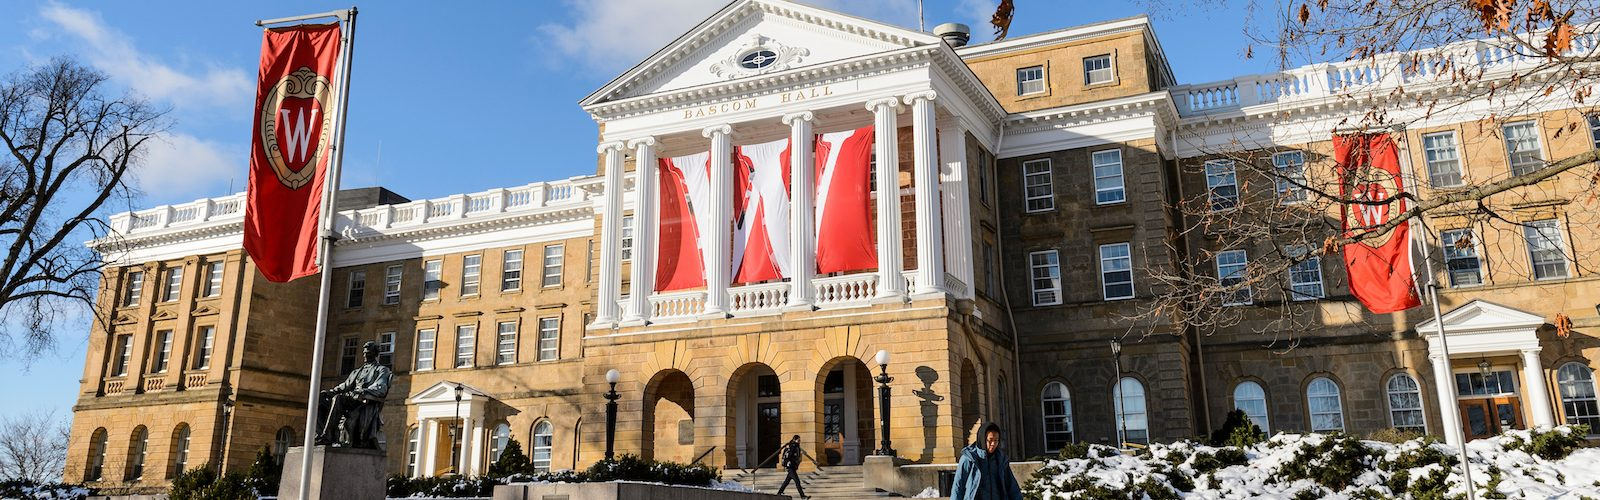 Bascom Hall with a large W banner behind the pillars